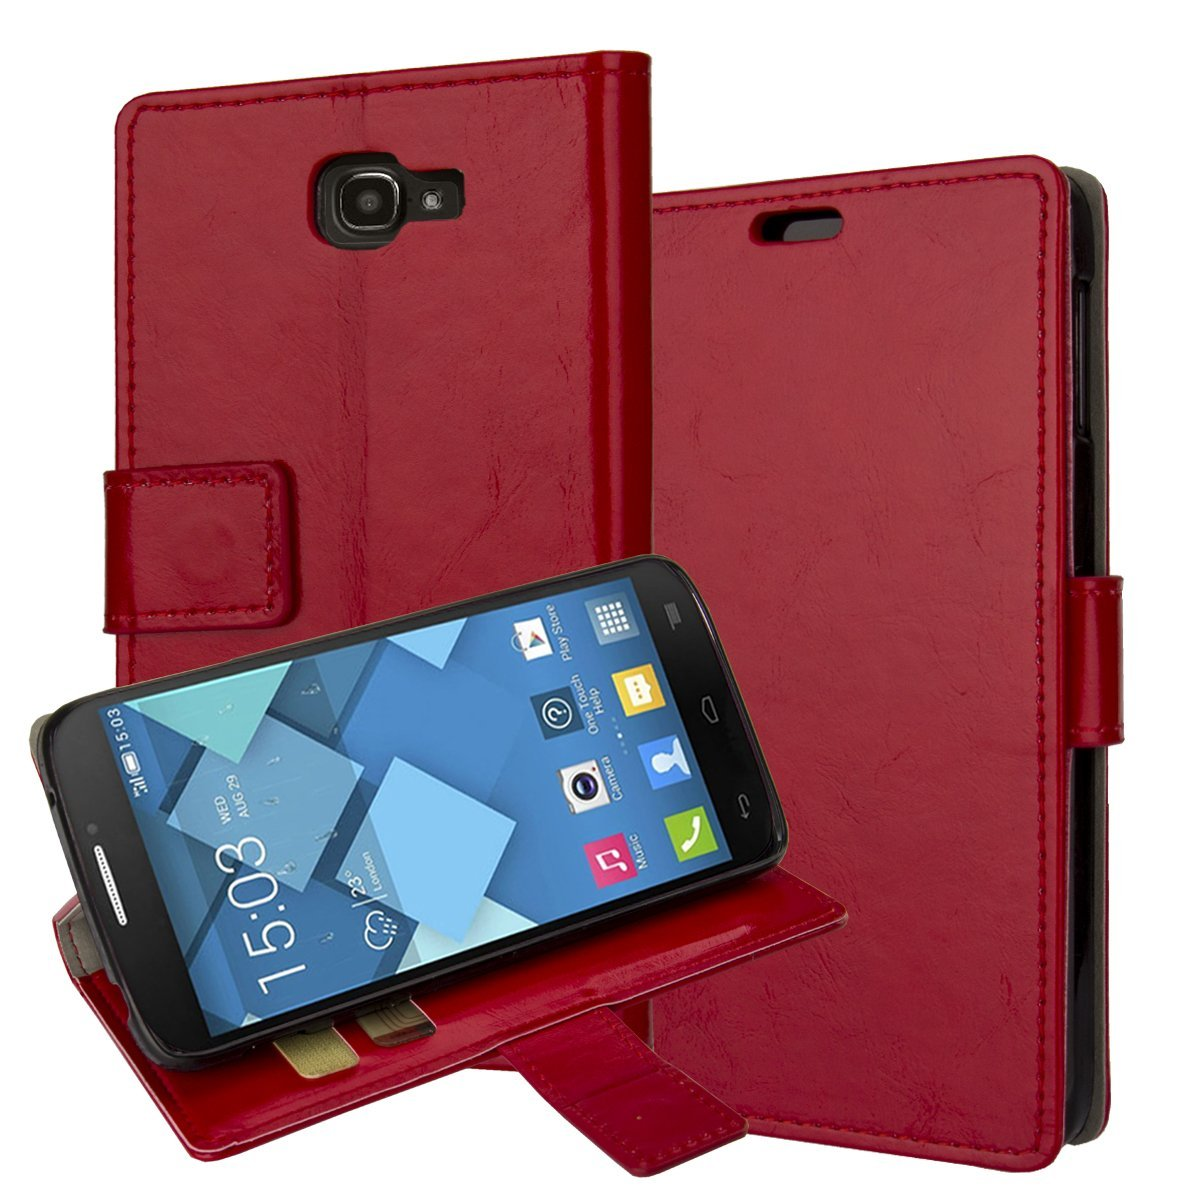 7040T, Alcatel Fierce 2 Case, Alcatel One Touch Fierce 2 7040T Cover Aomax® Wallet Card Slot View Stand Premium Protective Leather Cover Case for Alcatel One Touch Fierce 2 / Alcatel 7040T (T-Mobile/MetroPCS) / POP ICON A564C (Straight Talk/TracFone) 7040T (HDFM Red)